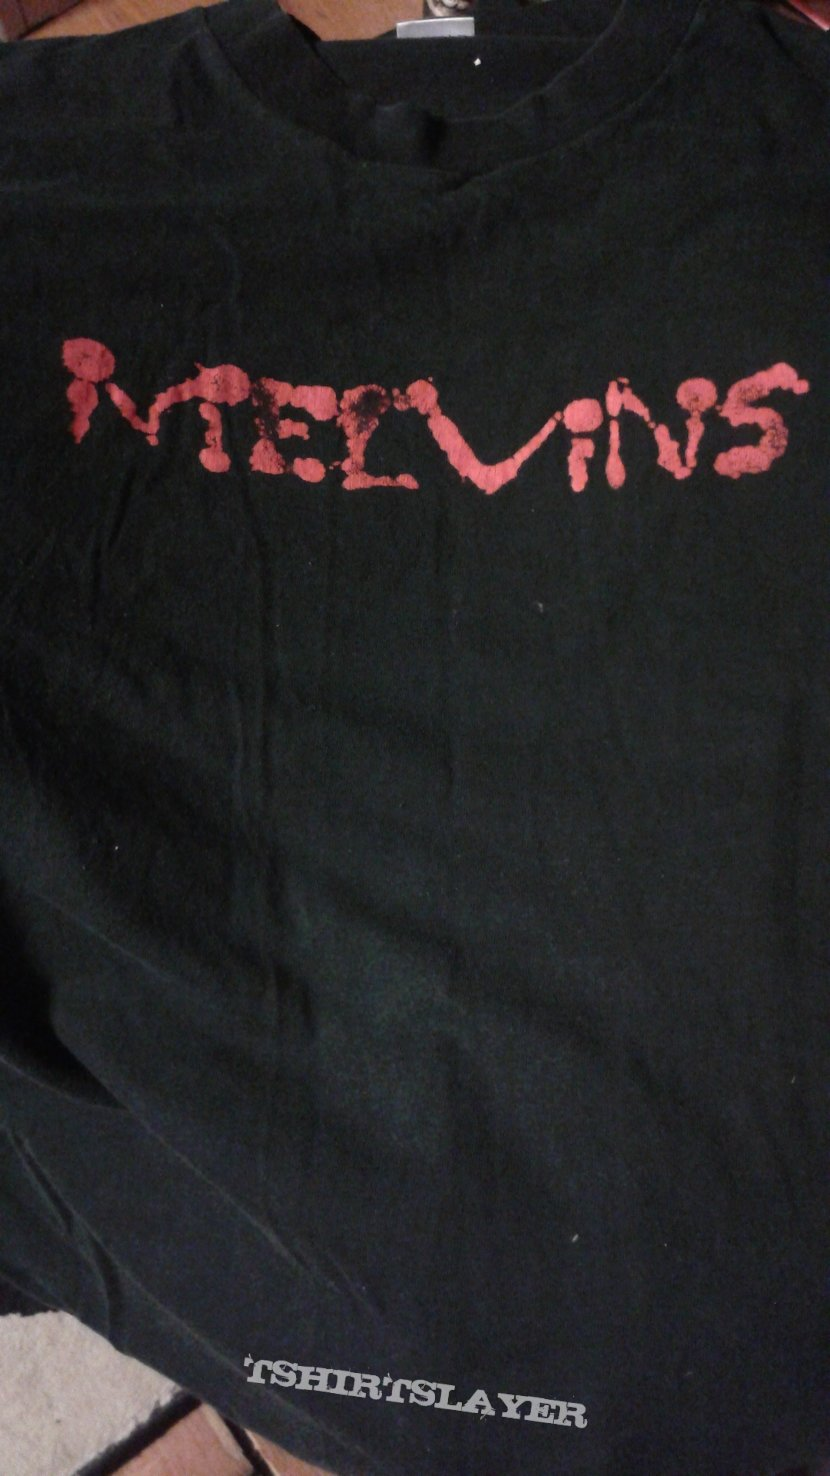 Melvins blood splatter logo t-shirt.